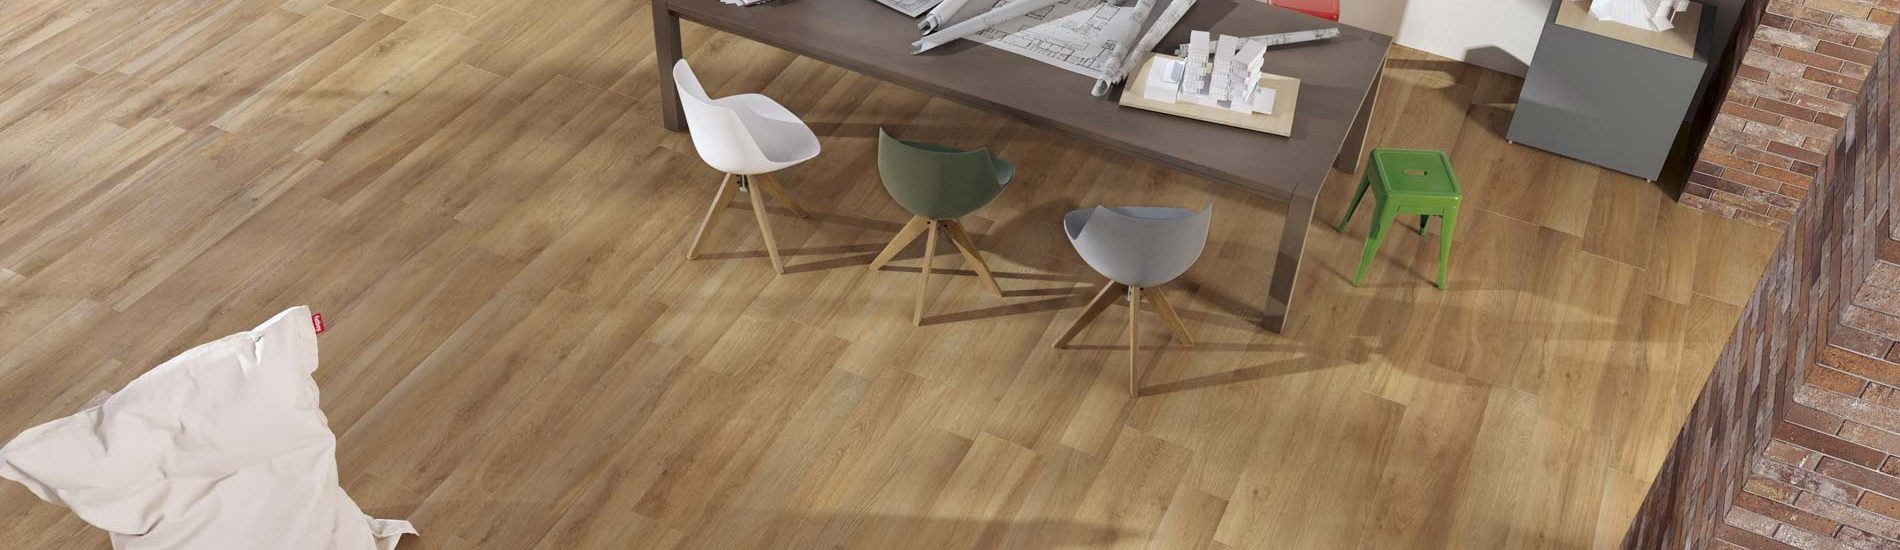 banner-ever-wood-look-floor-wall-tile-ceramic-rondine